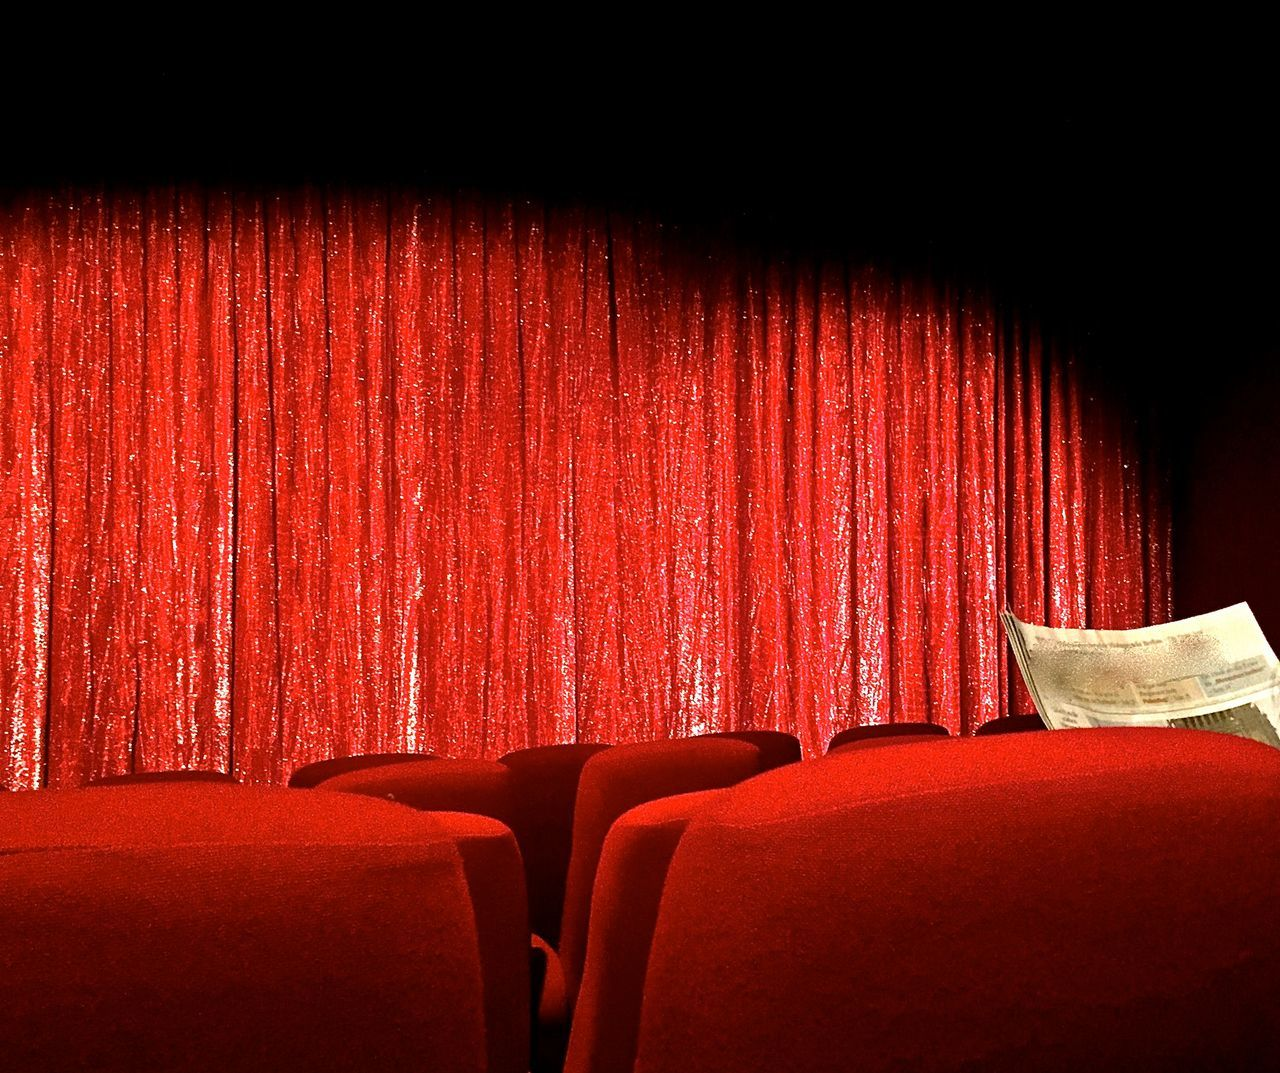 Chair Communication Culture Curtain Digital Media Film Industry Future Vision Indoors  Movie Theater Movie Theater Seats News Media Newspaper No People Old Media Old School Media Red Seat Storytelling Backgrounds